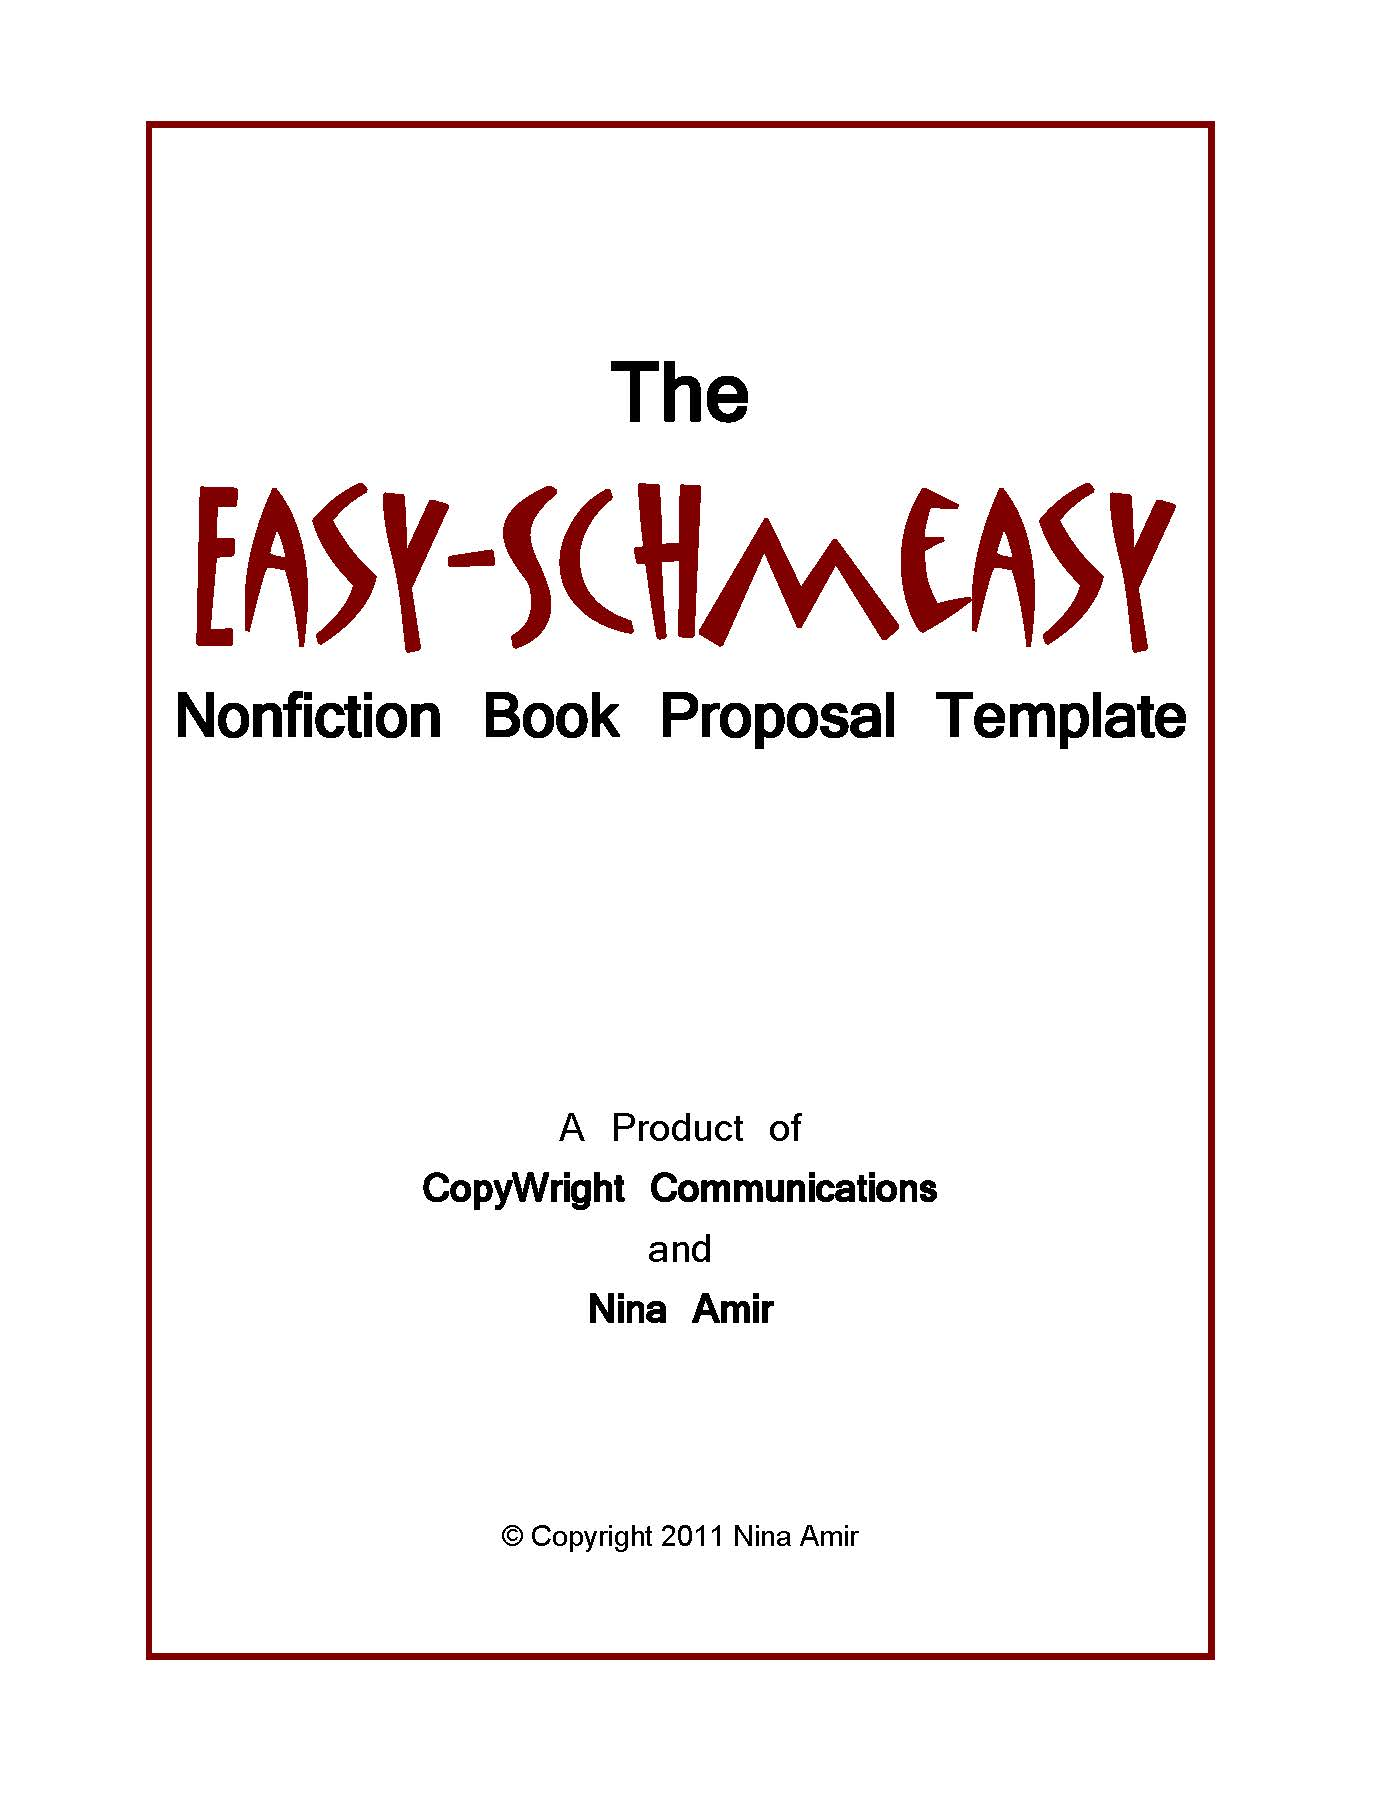 Easy Schmeasy Book Proposal cover